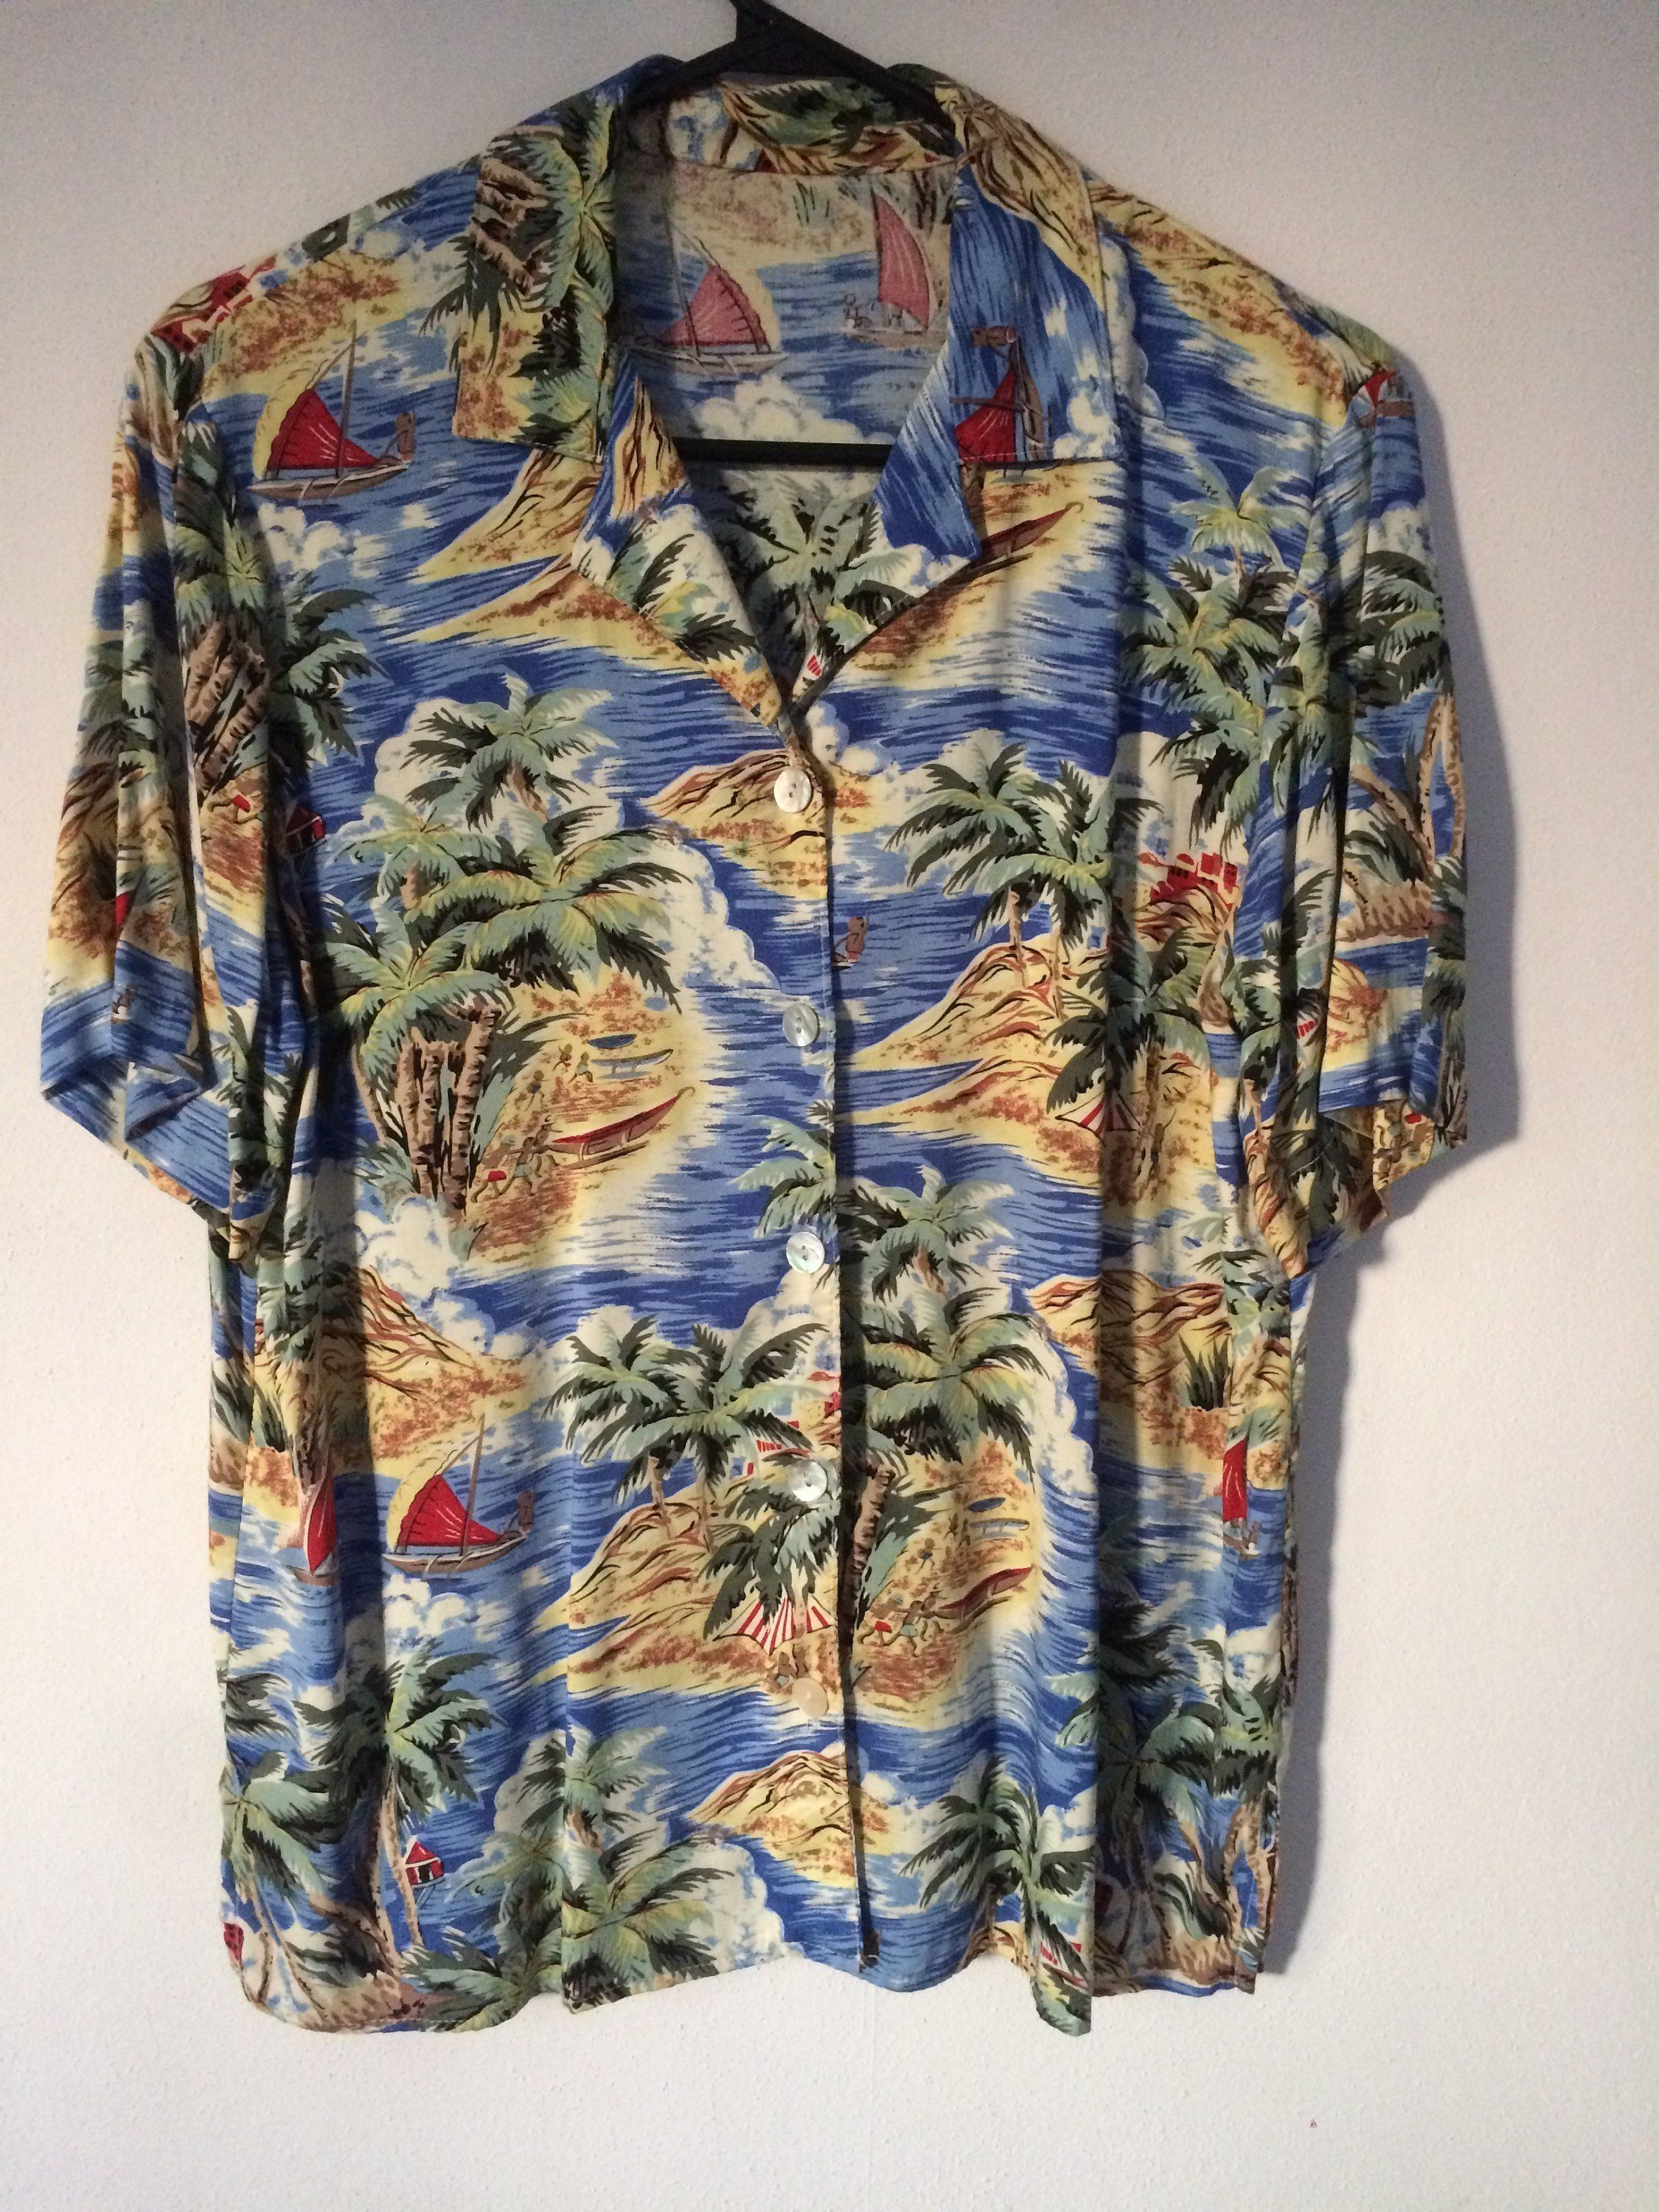 bcc822a4 Vintage Women's 80's Rayon Hibiscus Surf Hawaiian Aloha shirt sz M Palms  Island Reyn Spooner Paradise Found Sun Surf Avanti by SalvajeVintageSupply  on Etsy